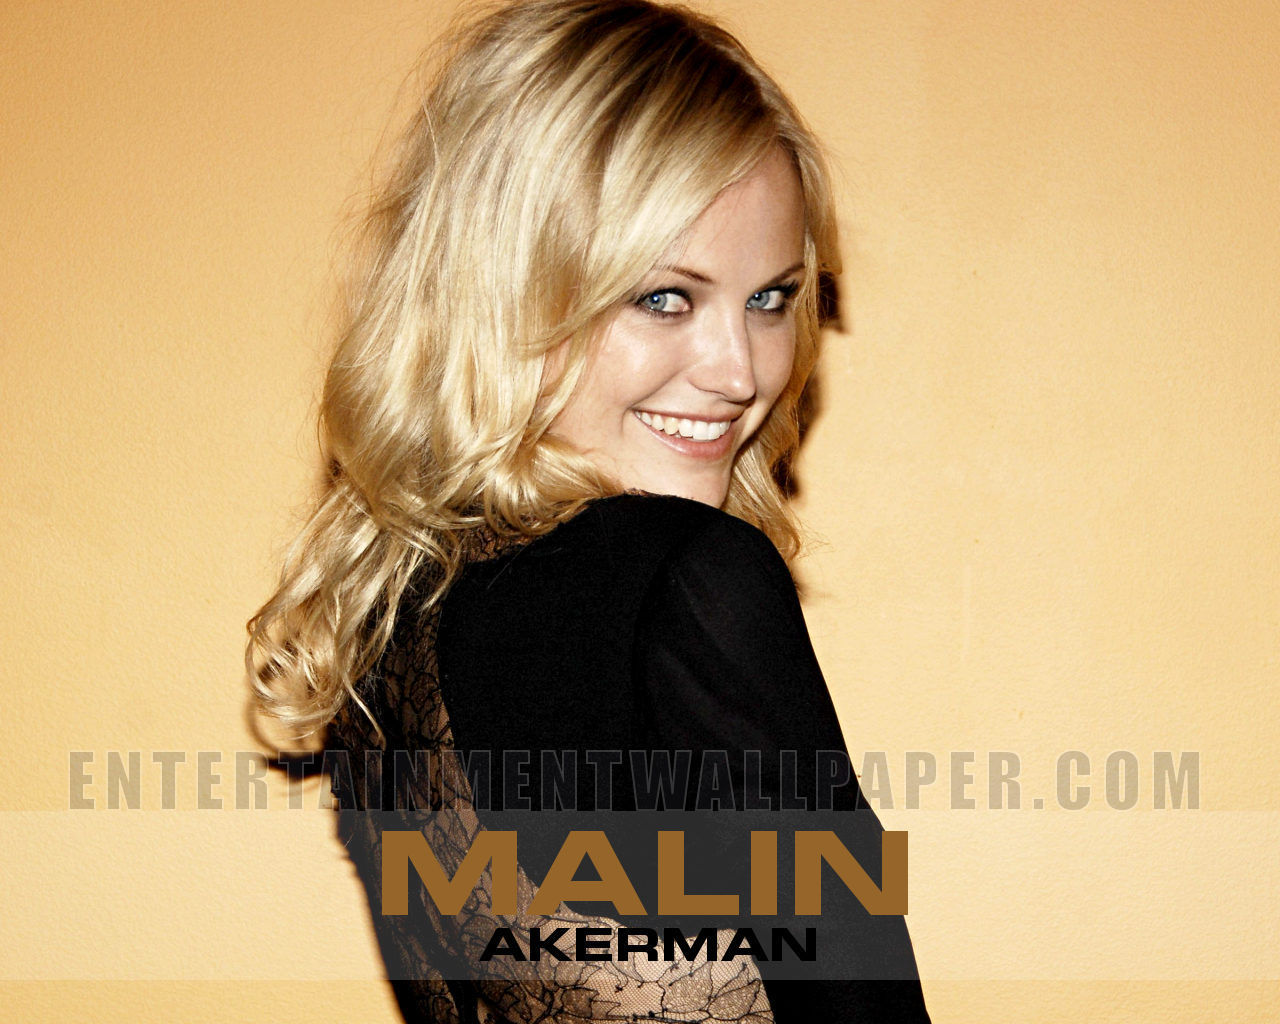 MALIN AKERMAN - MALIN AKERMAN Wallpaper (8622819) - Fanpop